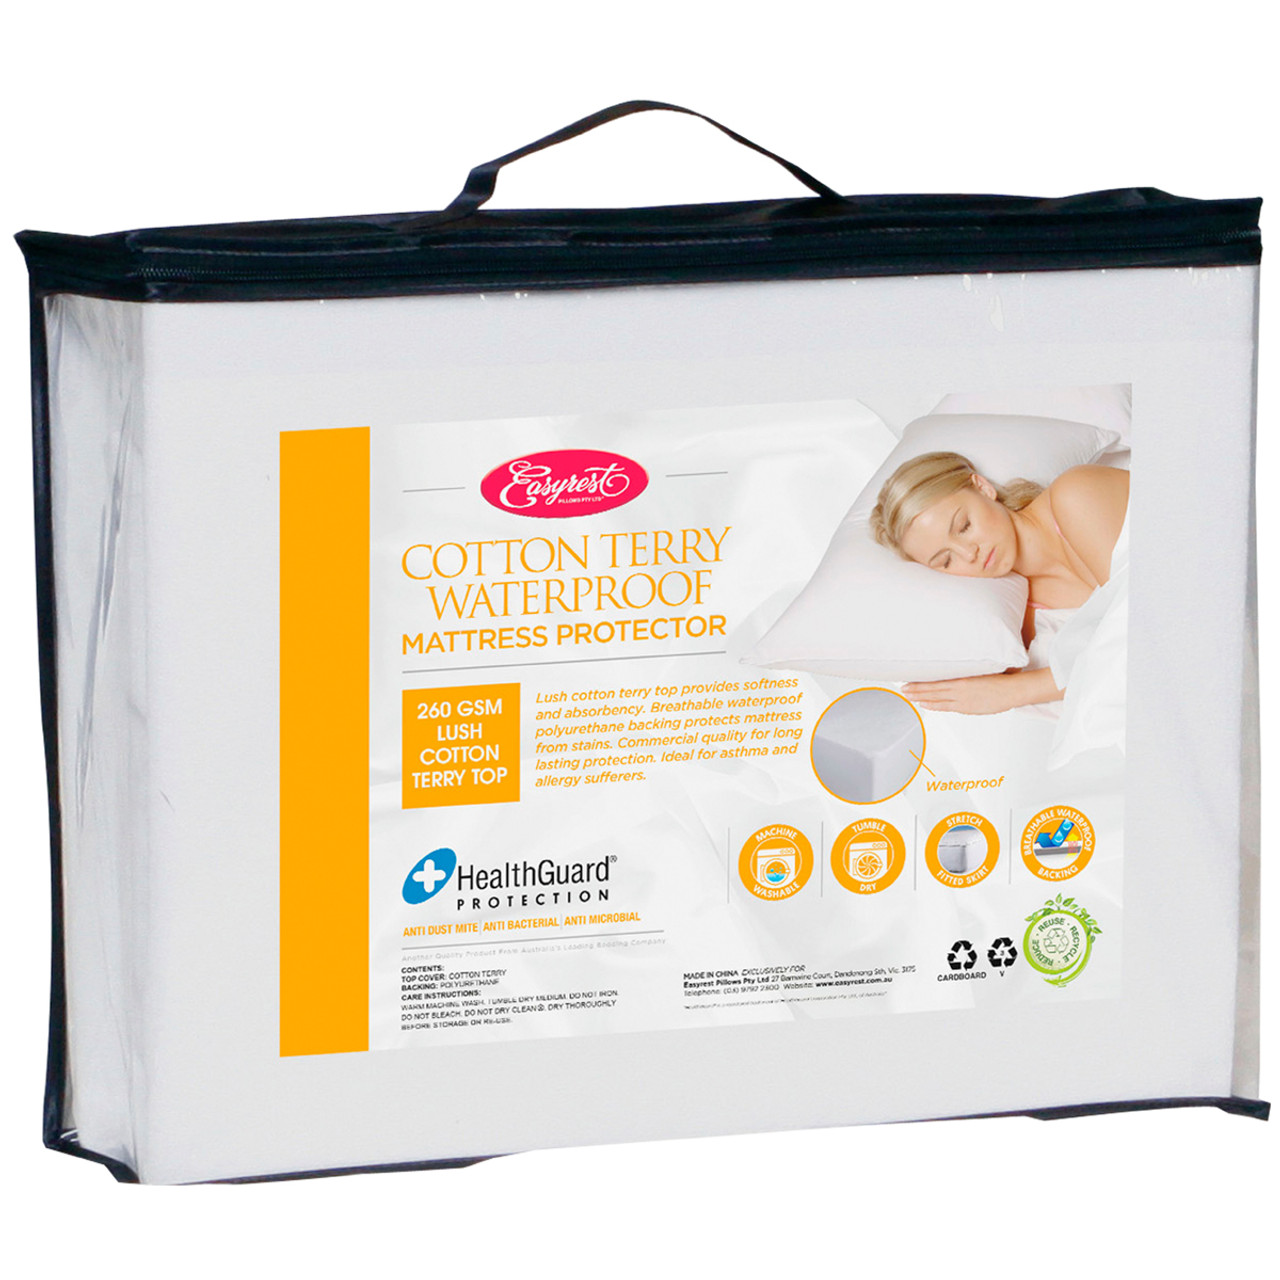 mattress king commercial. KING SINGLE COTTON TERRY WATERPROOF MATTRESS PROTECTOR (260GSM) Mattress King Commercial